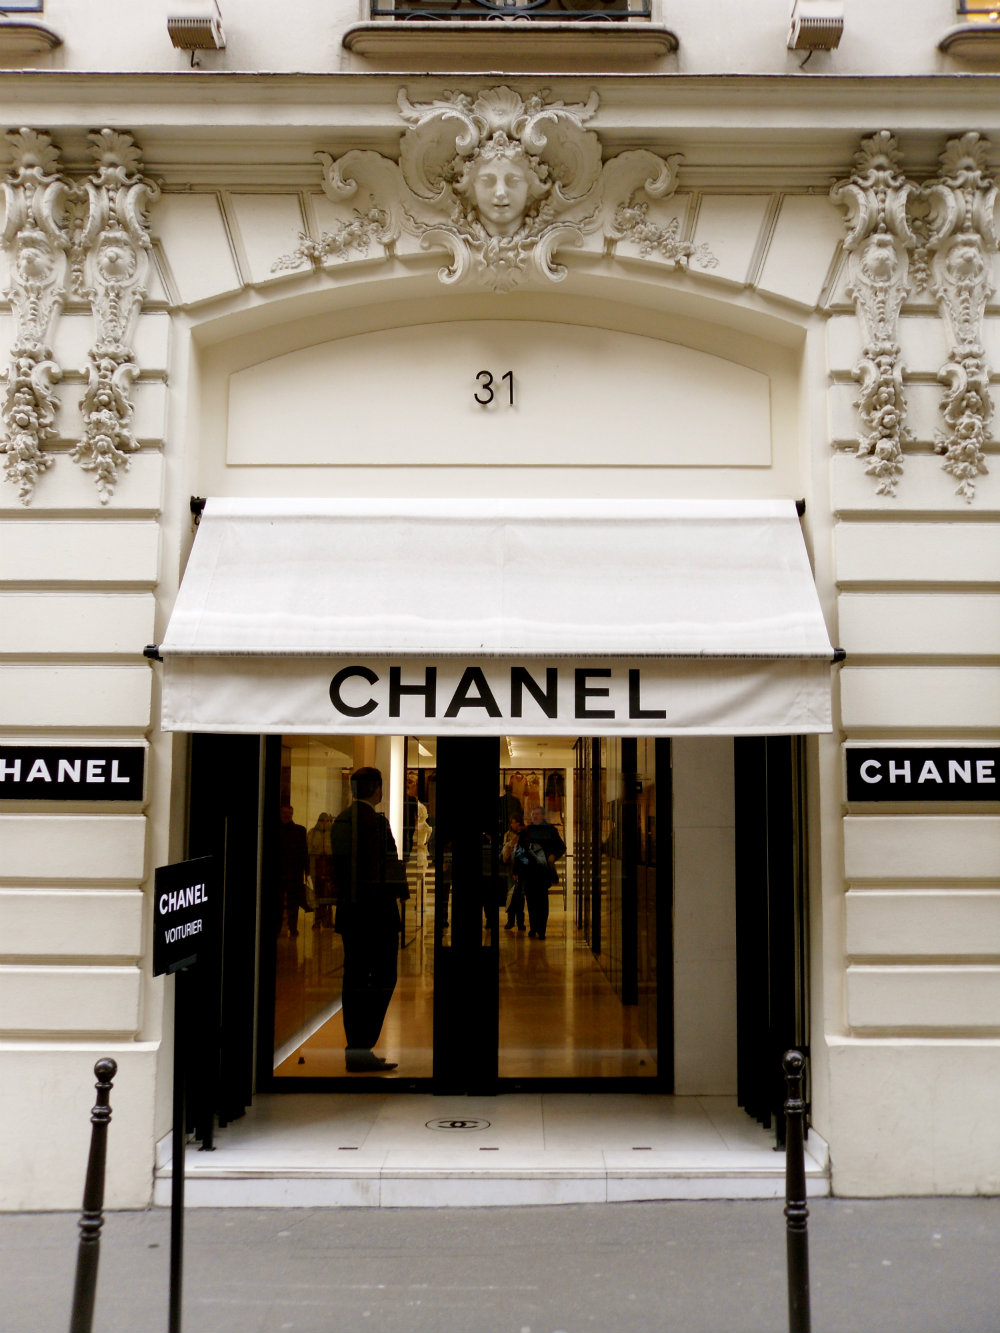 The Best Luxury Stores in Paris To Shop In 01 luxury stores in Paris The Best Luxury Stores in Paris To Shop In The Best Luxury Stores in Paris To Shop In 01